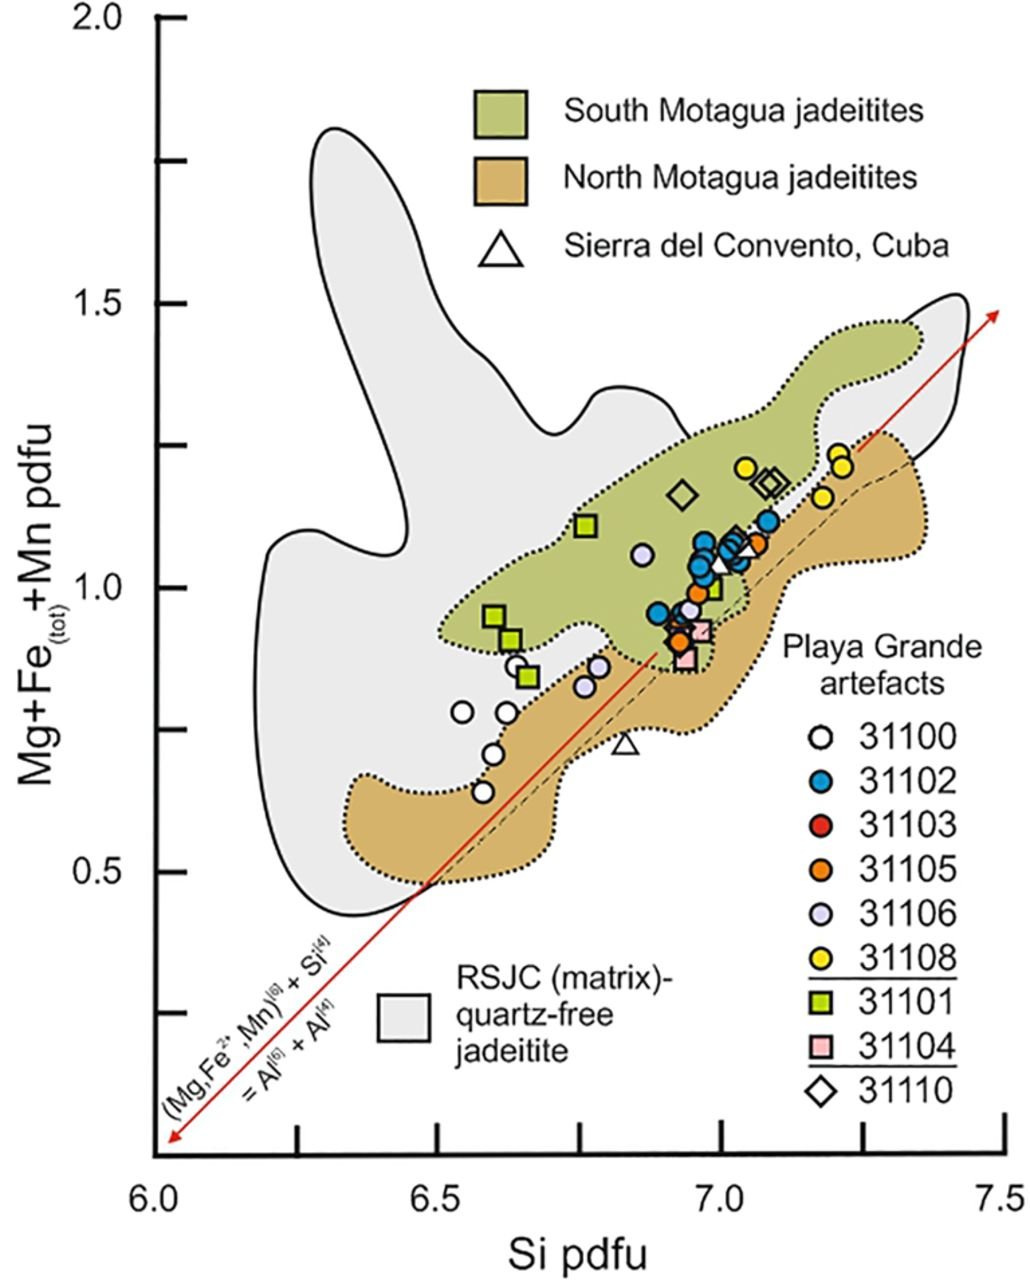 Petrography, mineralogy and geochemistry of jadeite-rich